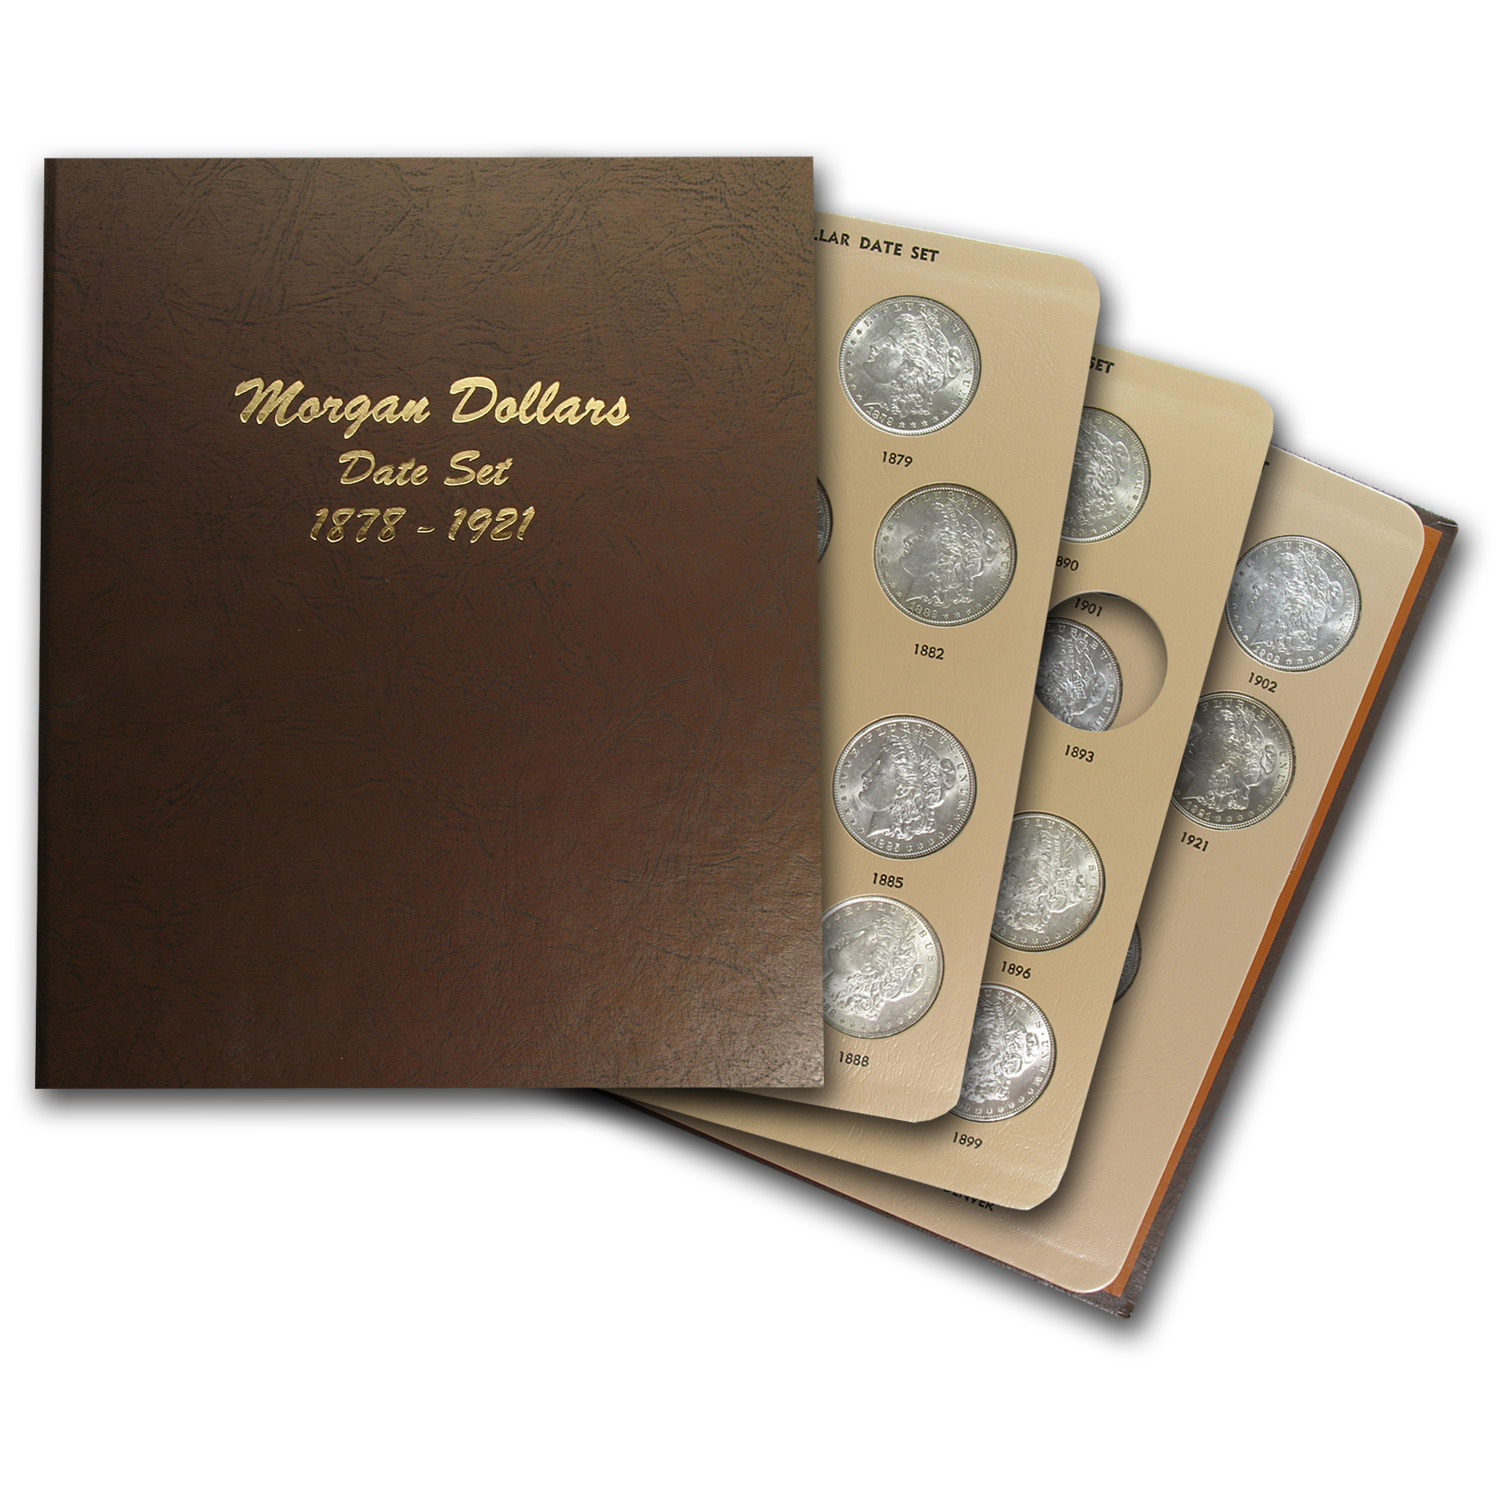 Morgan Dollar Date Set - BU - Dansco Album - 29 Coins